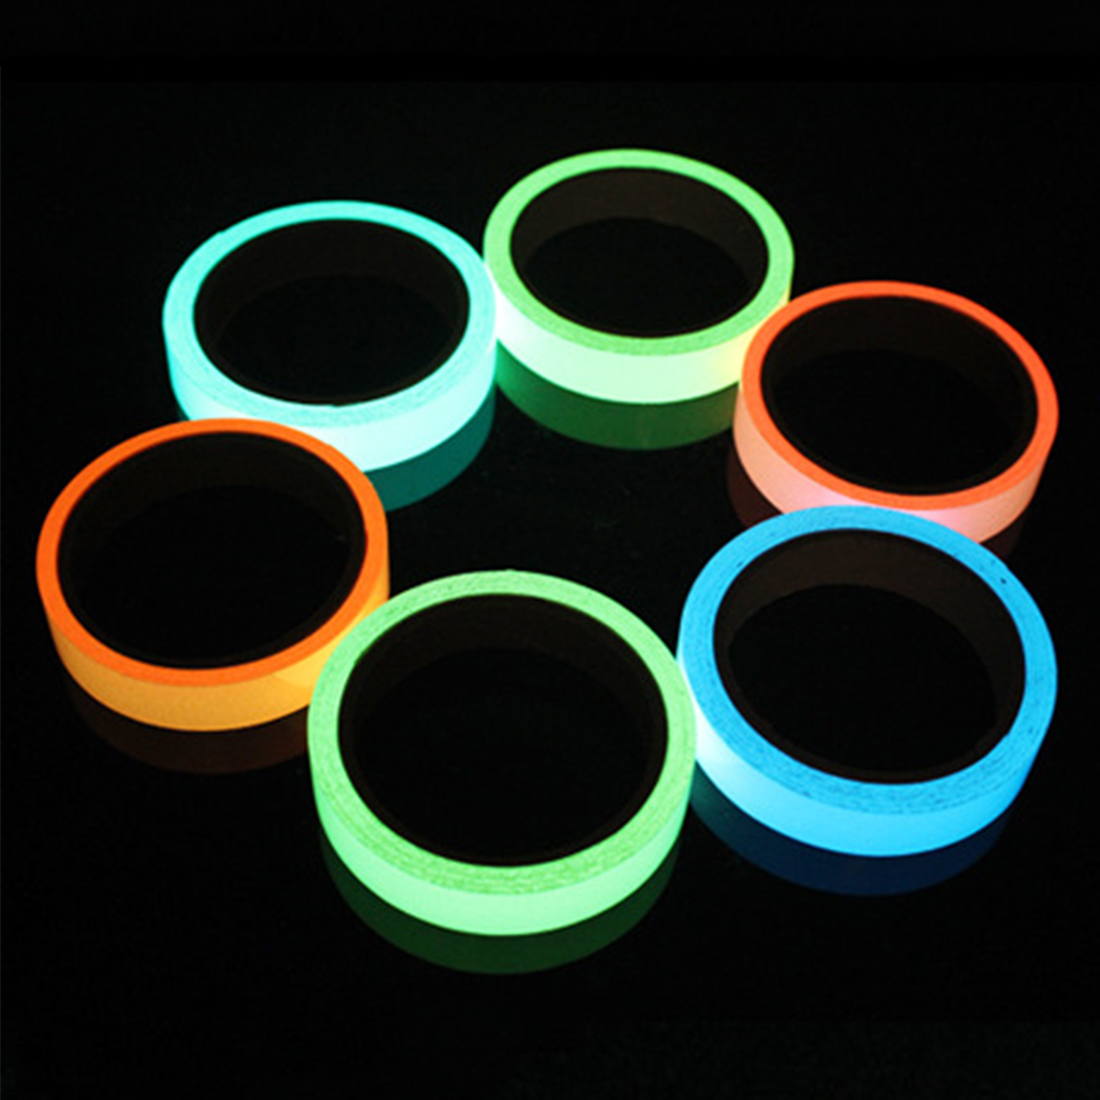 Adaptable Hot Sales Colorful Reflective Tapes Glow Self-adhesive Sticker Luminous Fluorescent Glowing Tapes Dark Striking Warning Tape Back To Search Resultssecurity & Protection